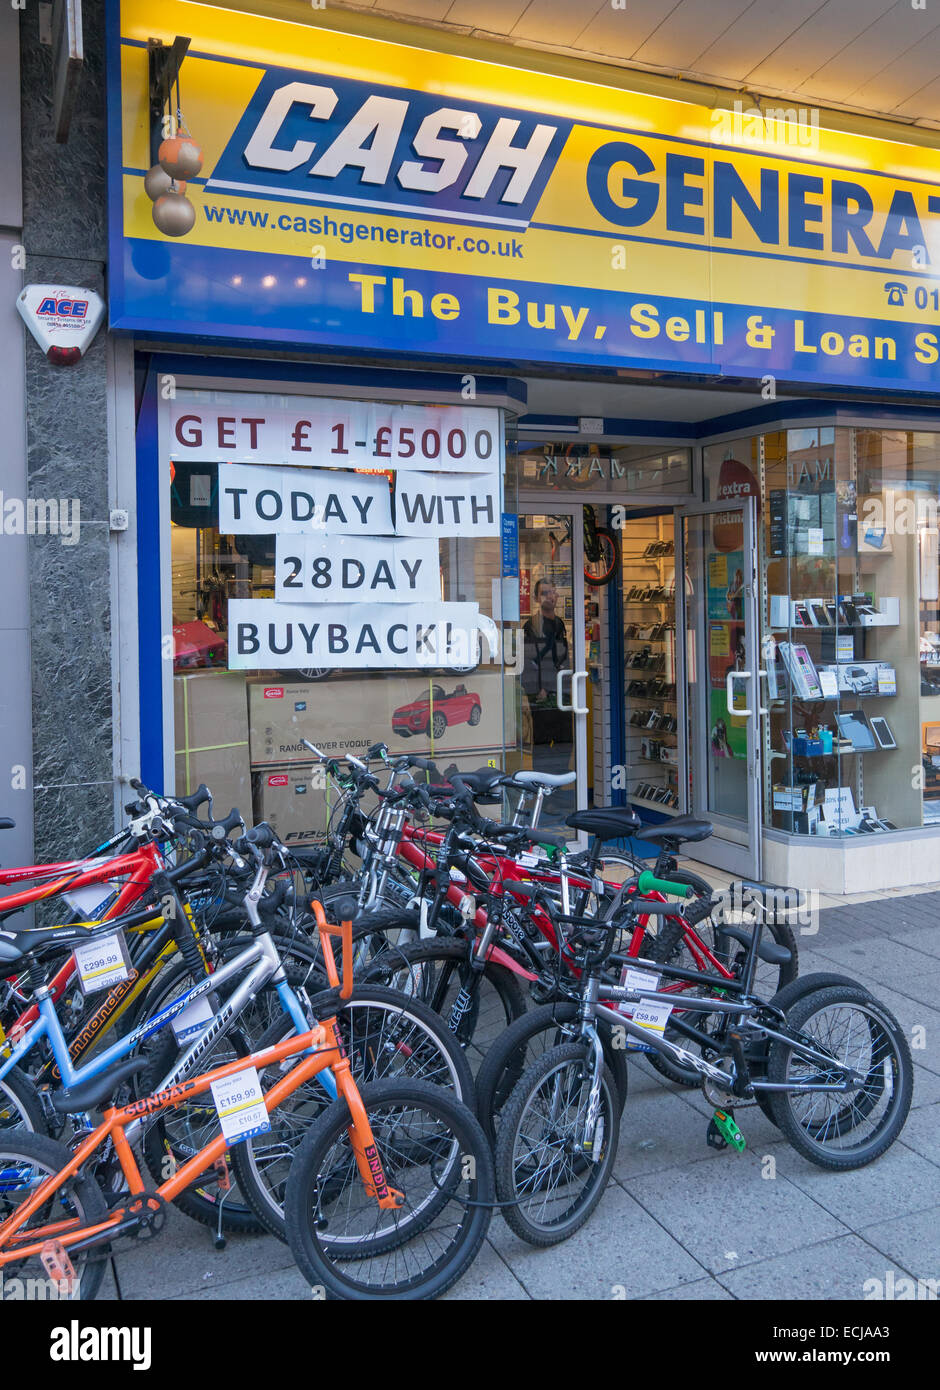 Cash Generator Pawn Shop With Xmas Bikes For Sale And 28 Day